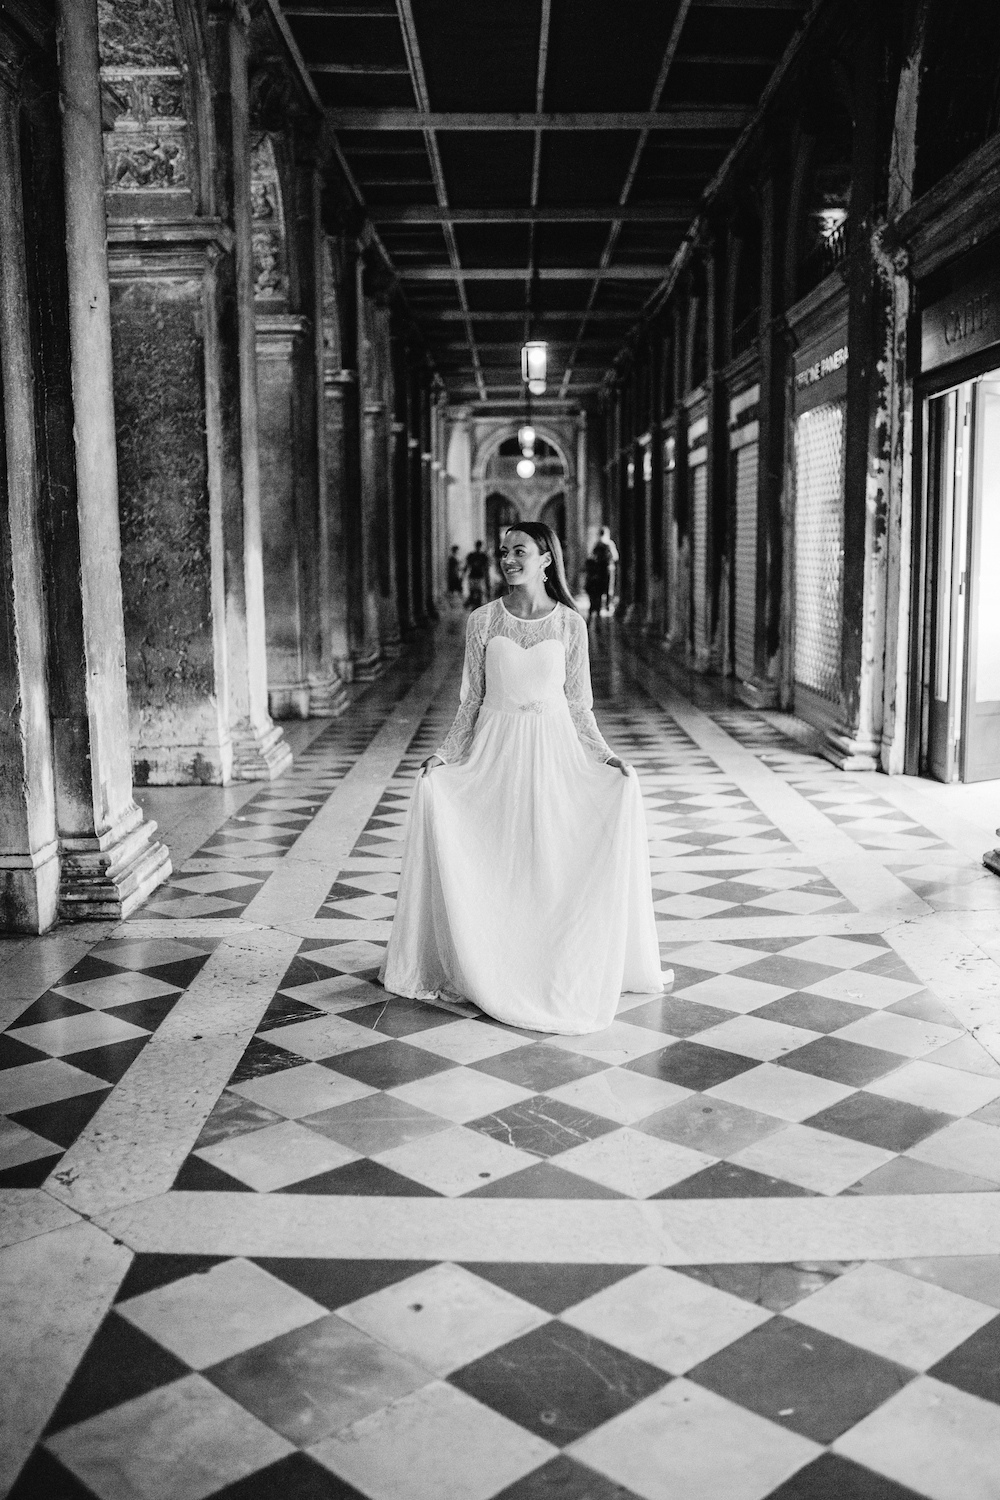 deineweddingstory venedig 26